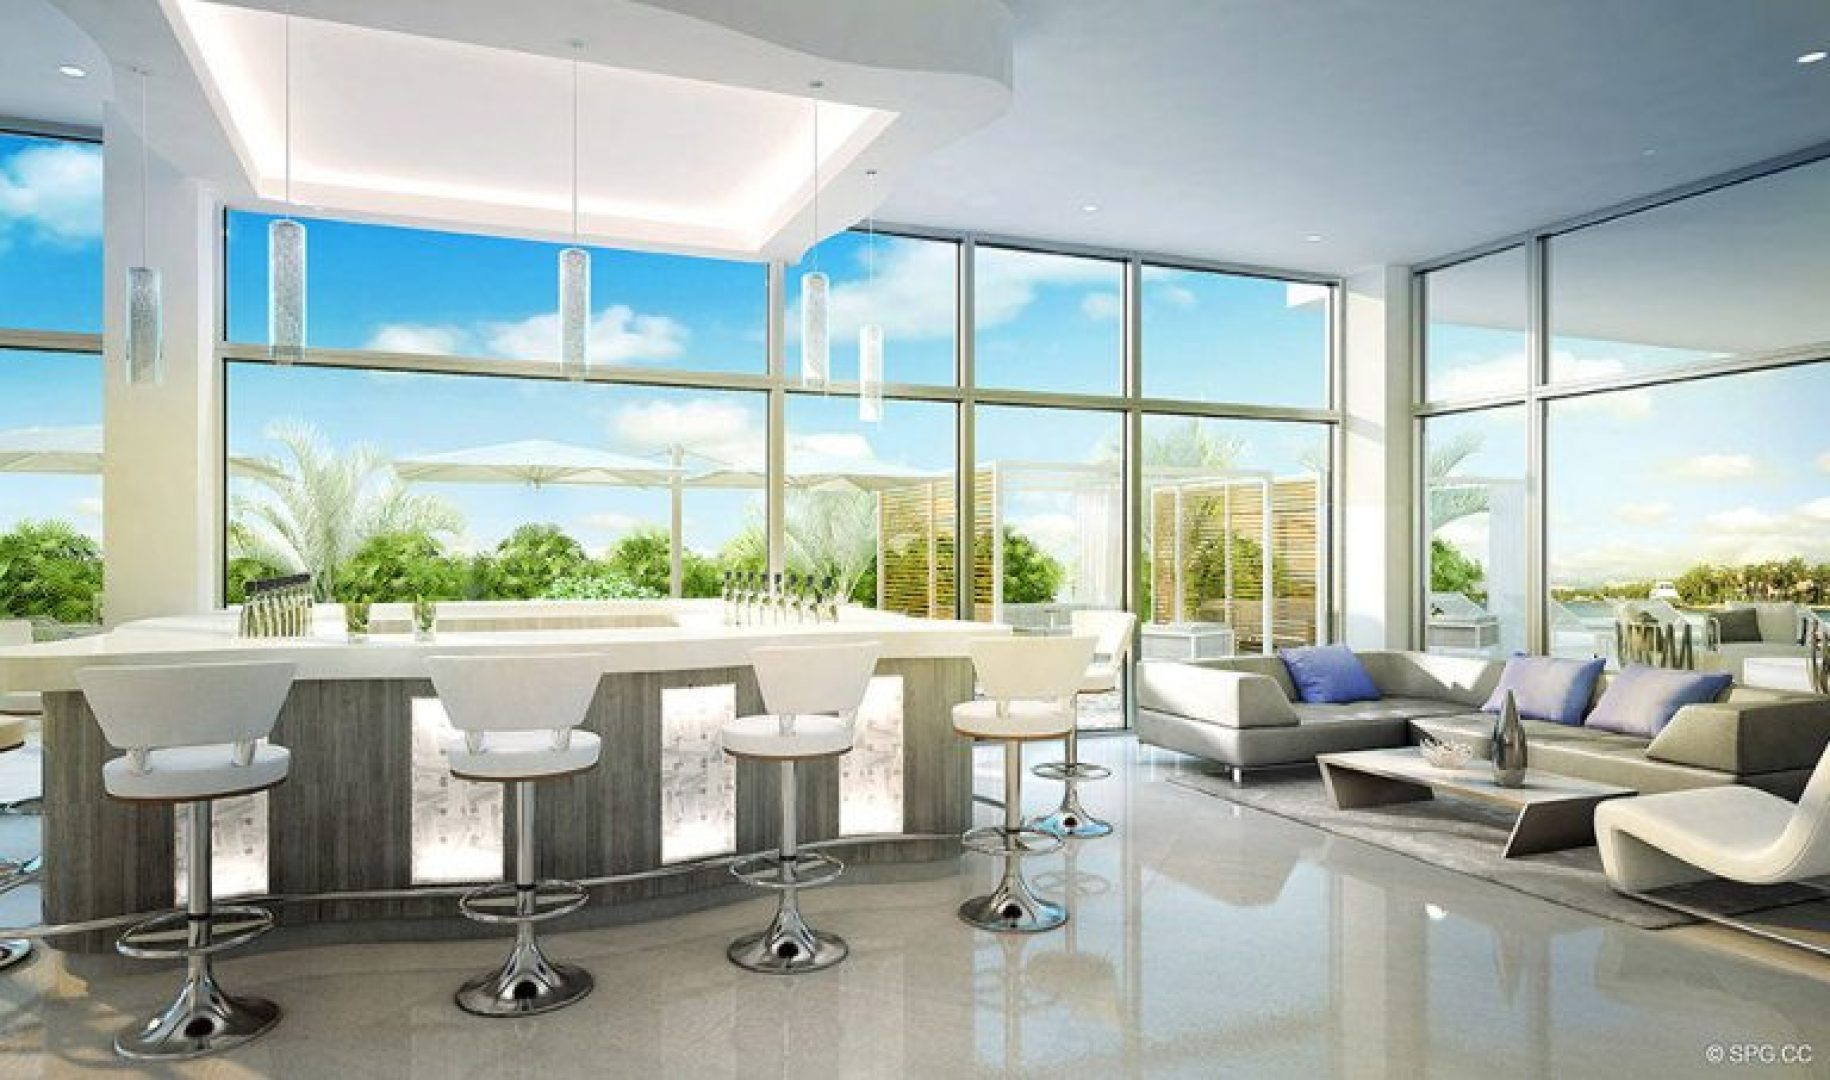 The Bar and Lounge Room in 321 at Water's Edge, Luxury Waterfront Condos in Fort Lauderdale, Florida 33304